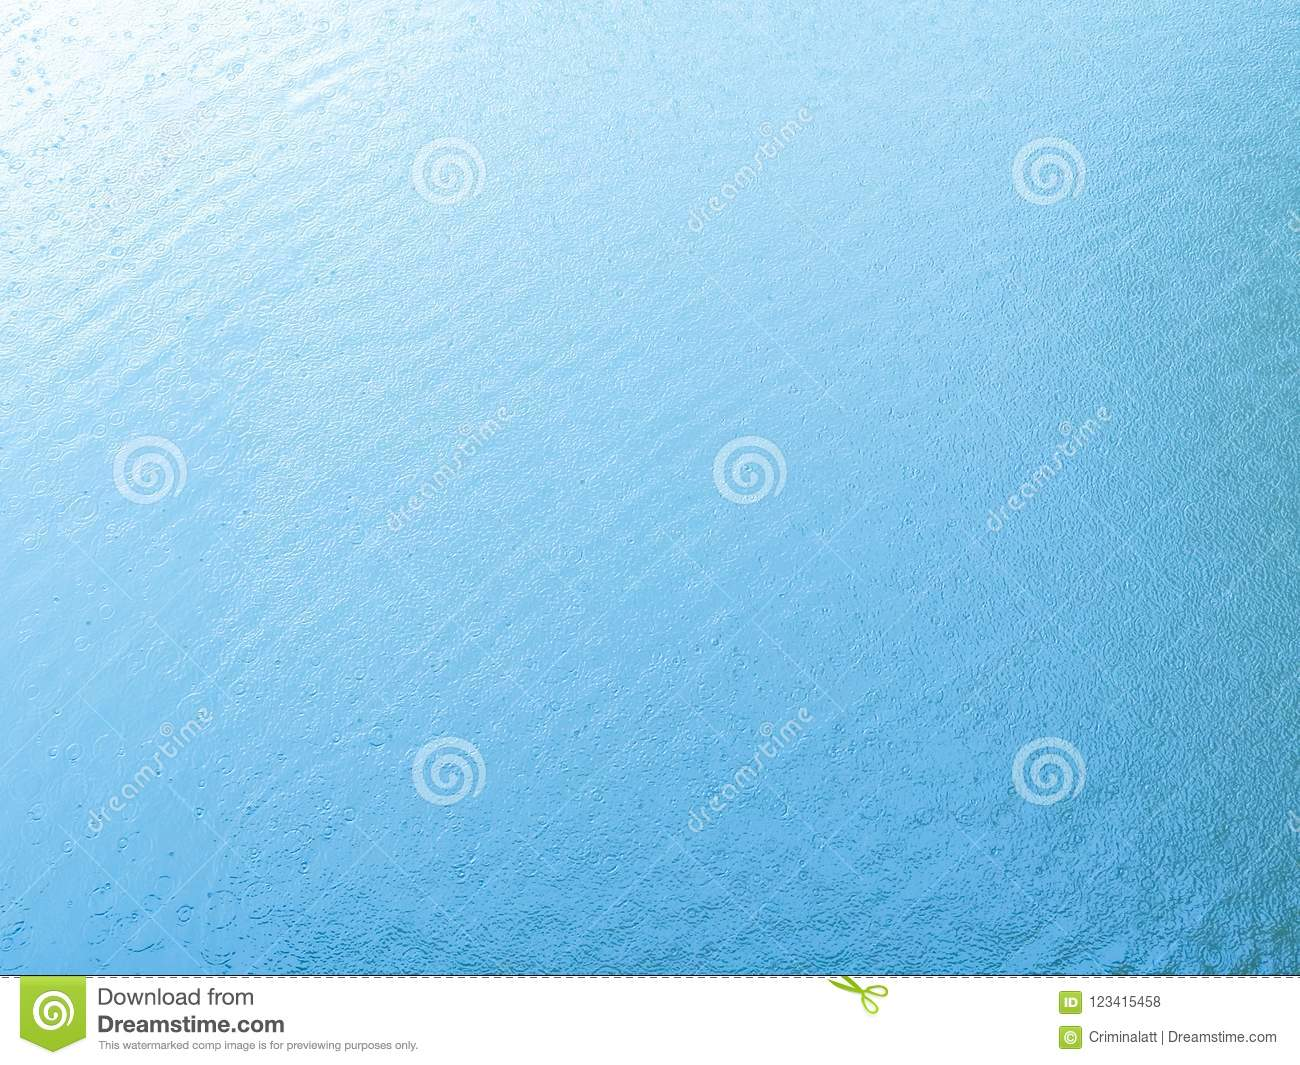 Rippling blue water by rain background